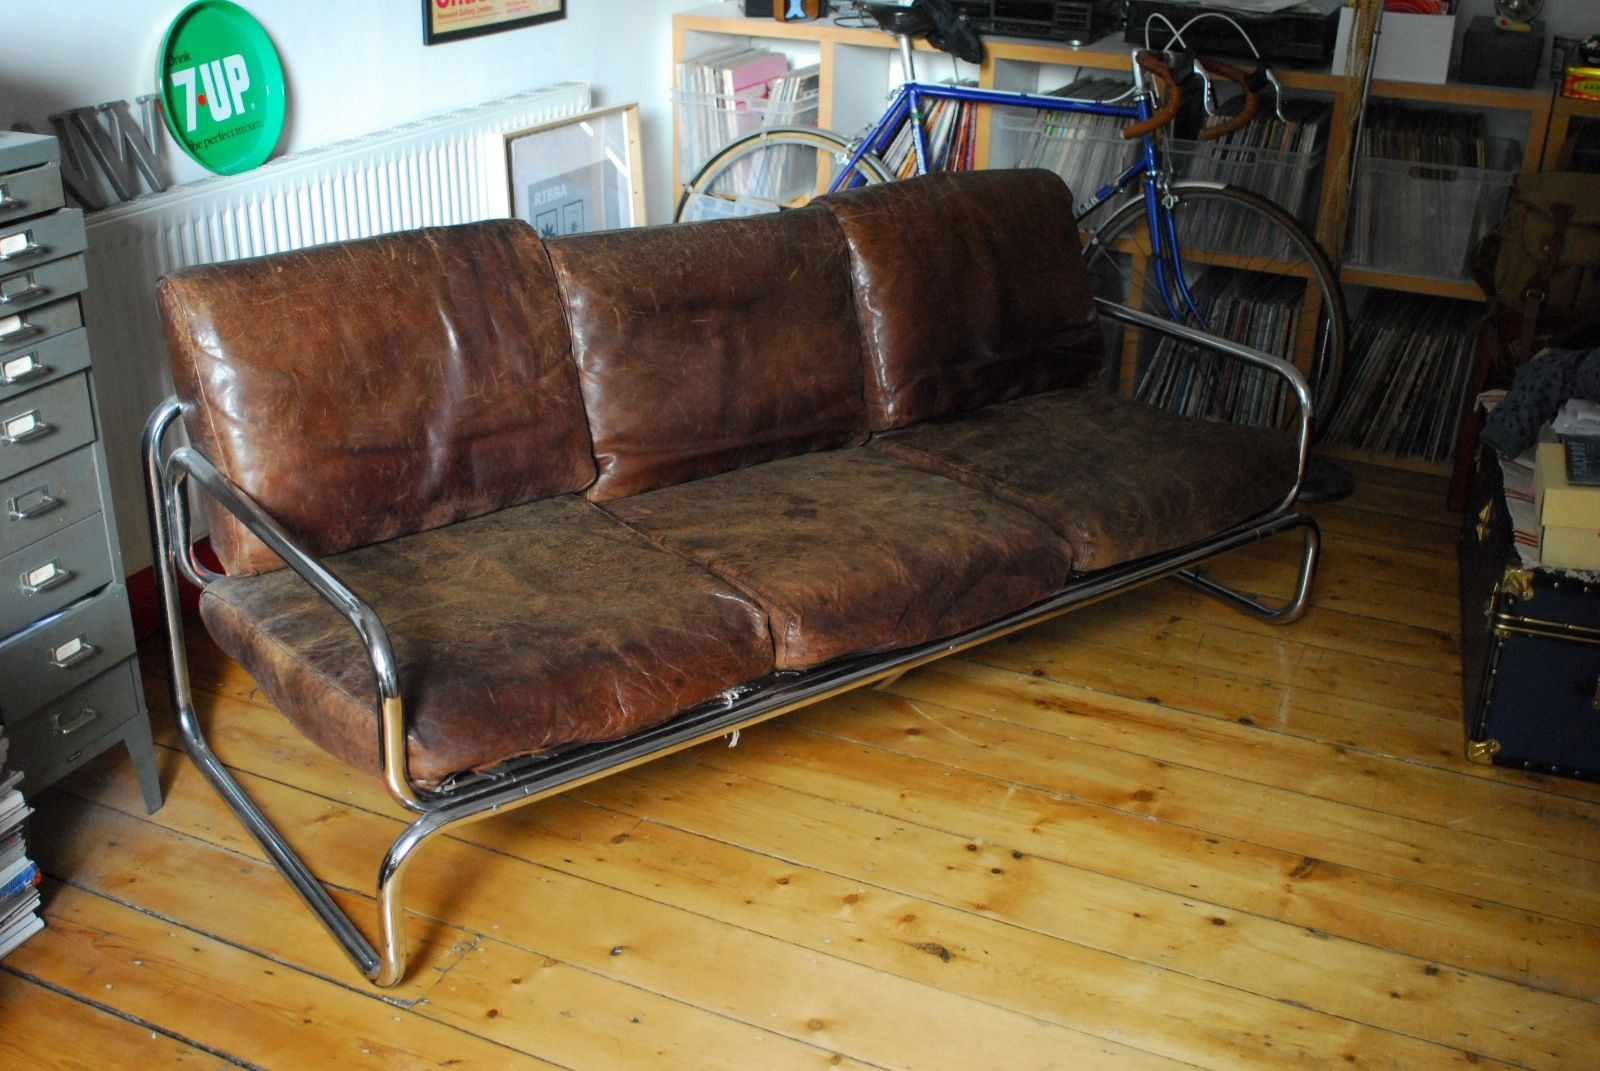 Vintage Retro 1970s Rodney Kinsman Omk Habitat Sofa Leather And Chrome Class In Retro Vintage Sofa Chrome